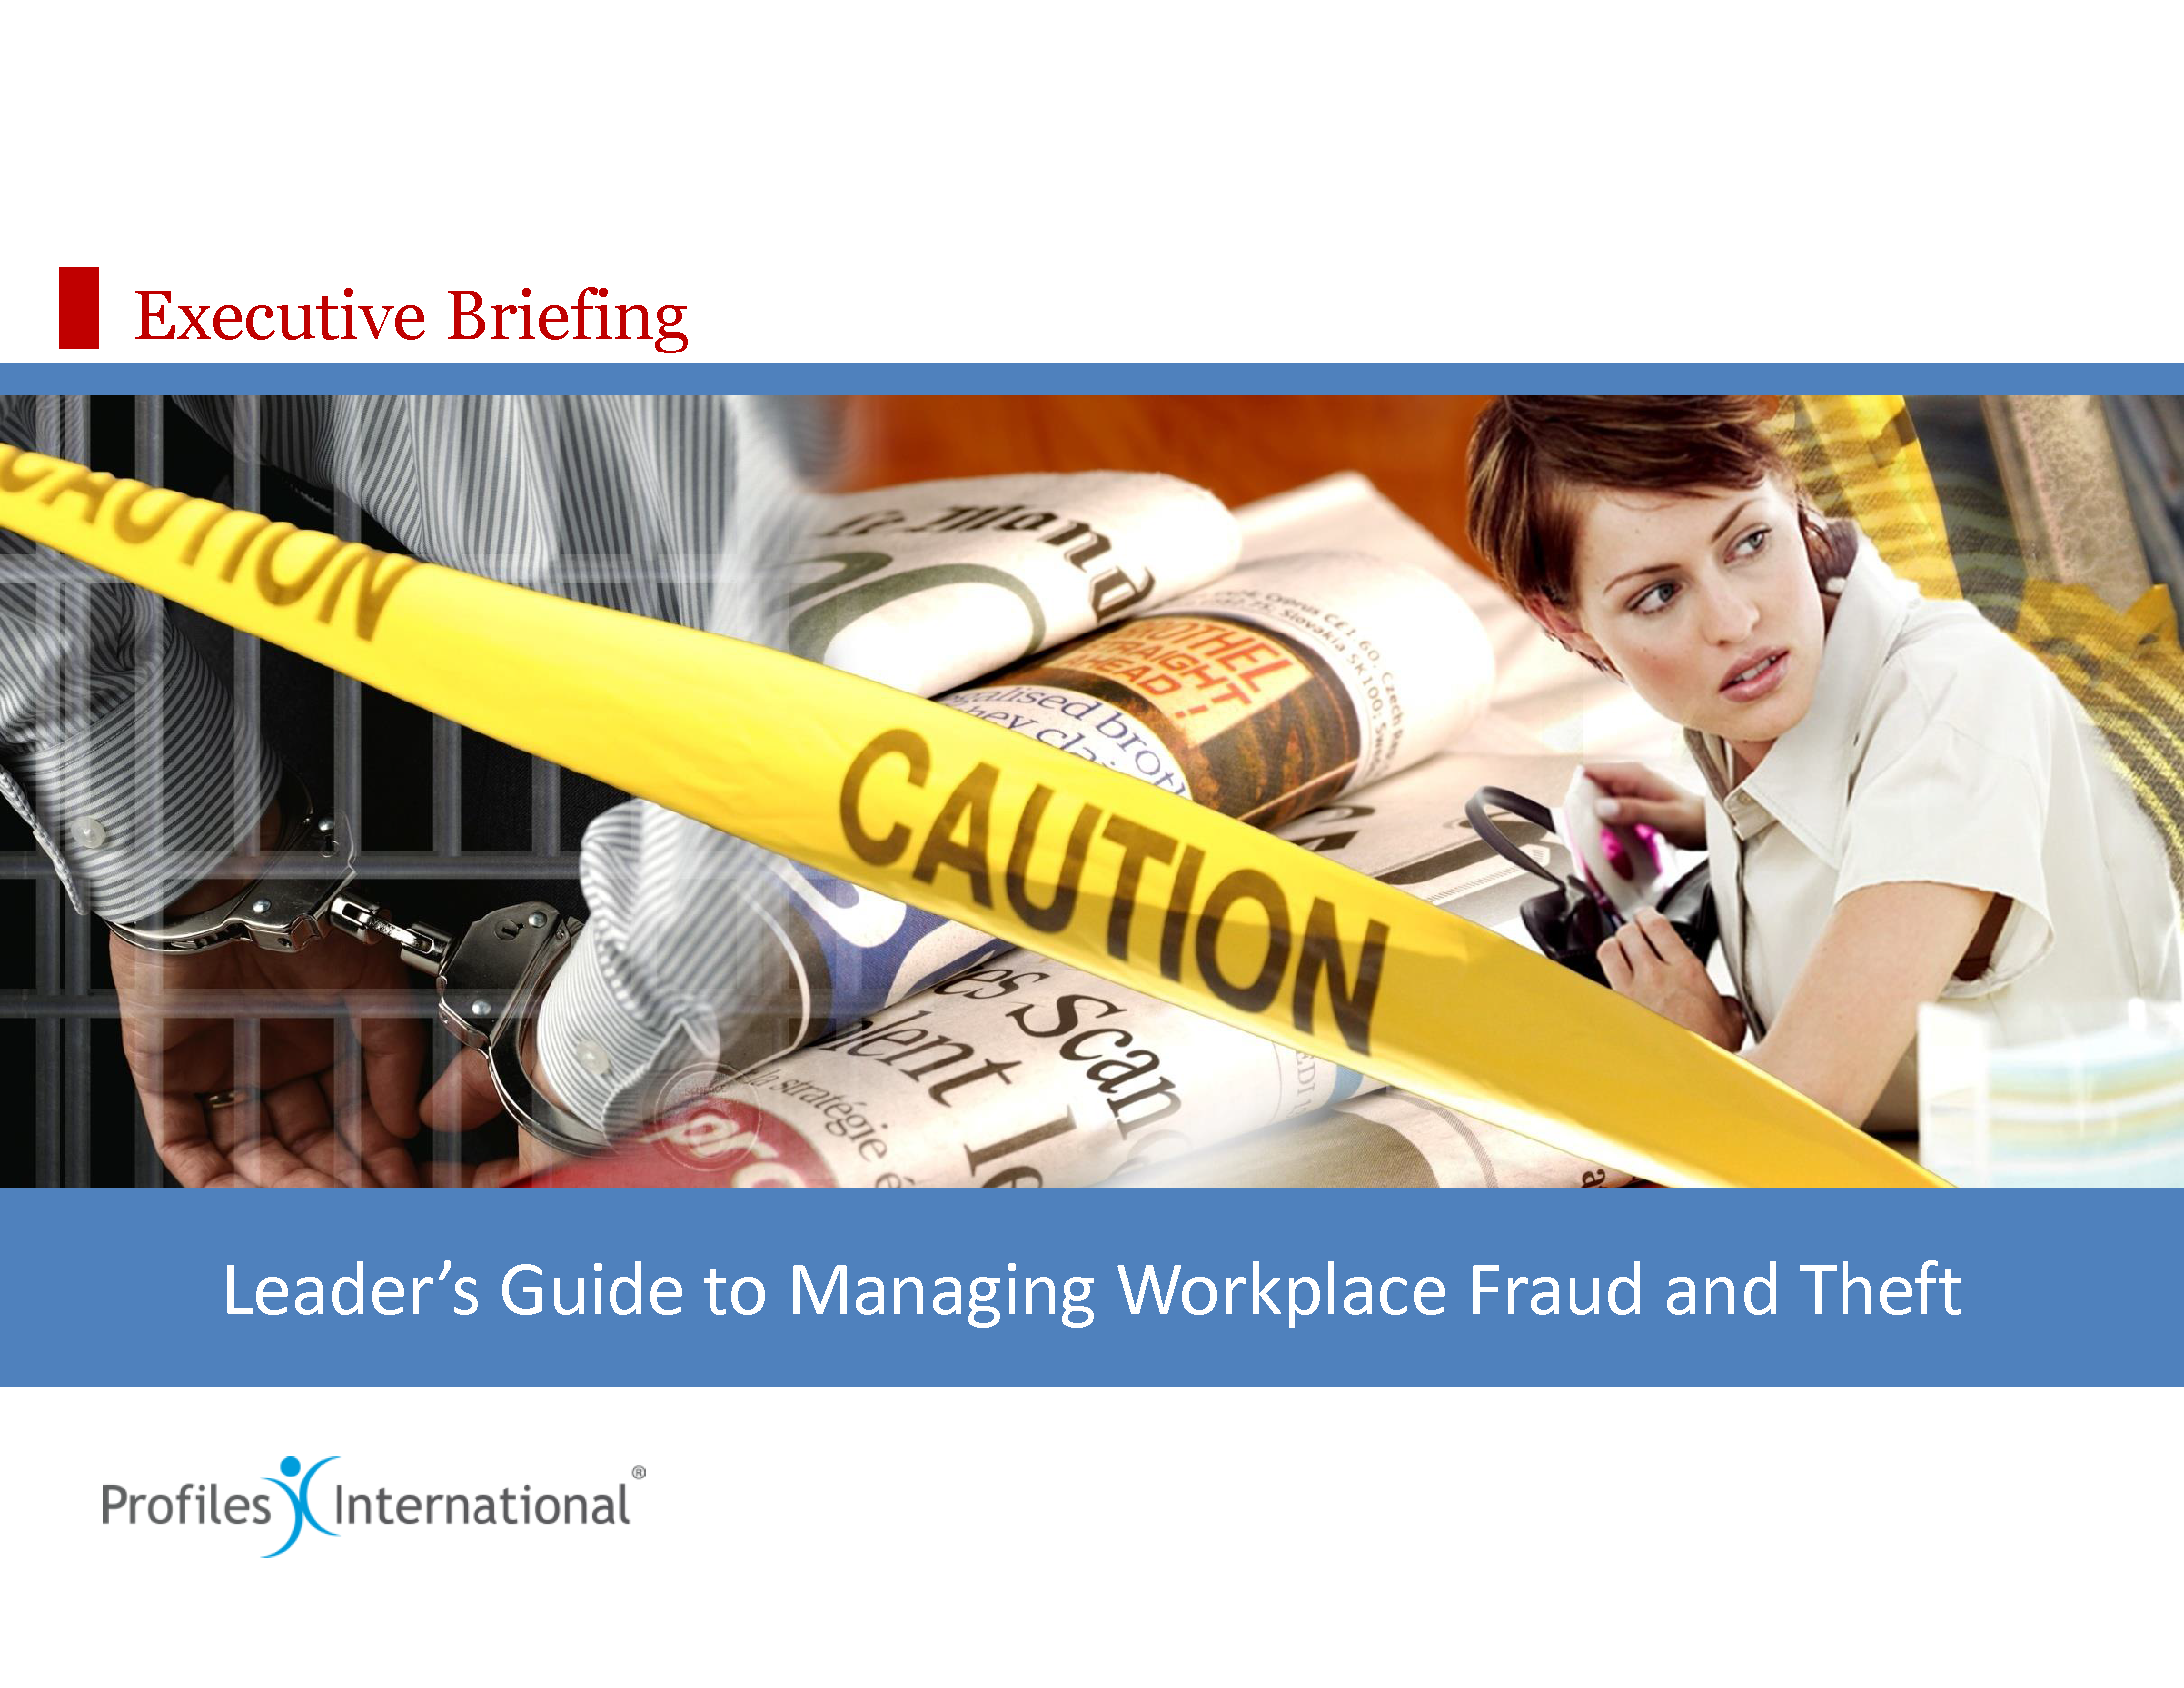 13-Leaders Guide to Managing Workplace Fraud, Theft, and Violence